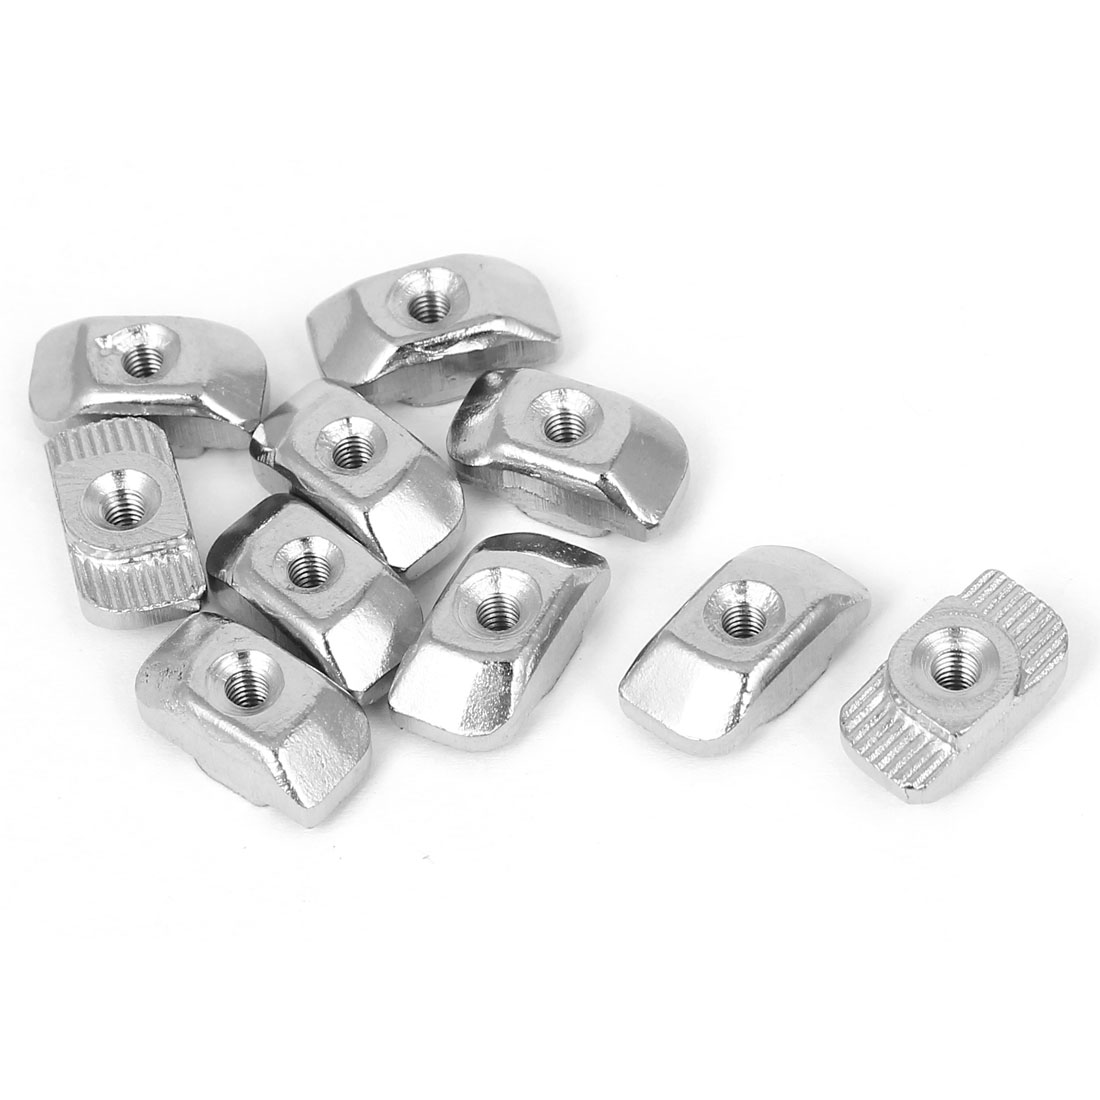 10pcs M3 Thread Hammer Head T Slot Drop in T-Nuts for 30 Series Aluminum Profile